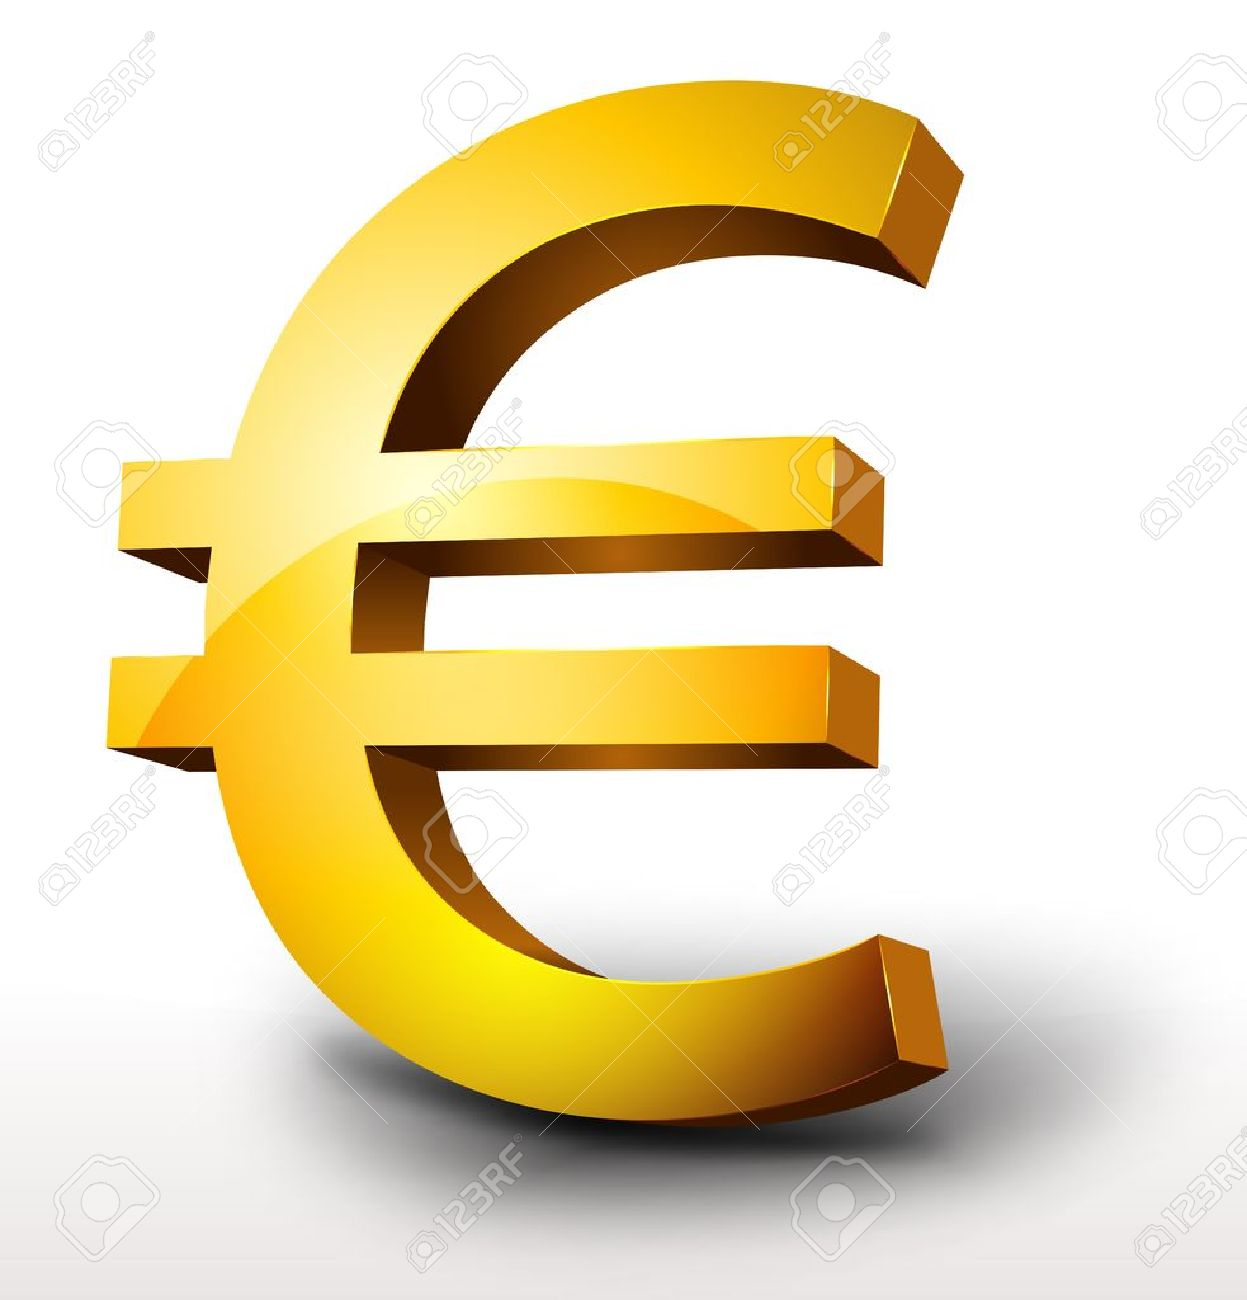 illustration of a glossy 3d golden euro currency royalty free